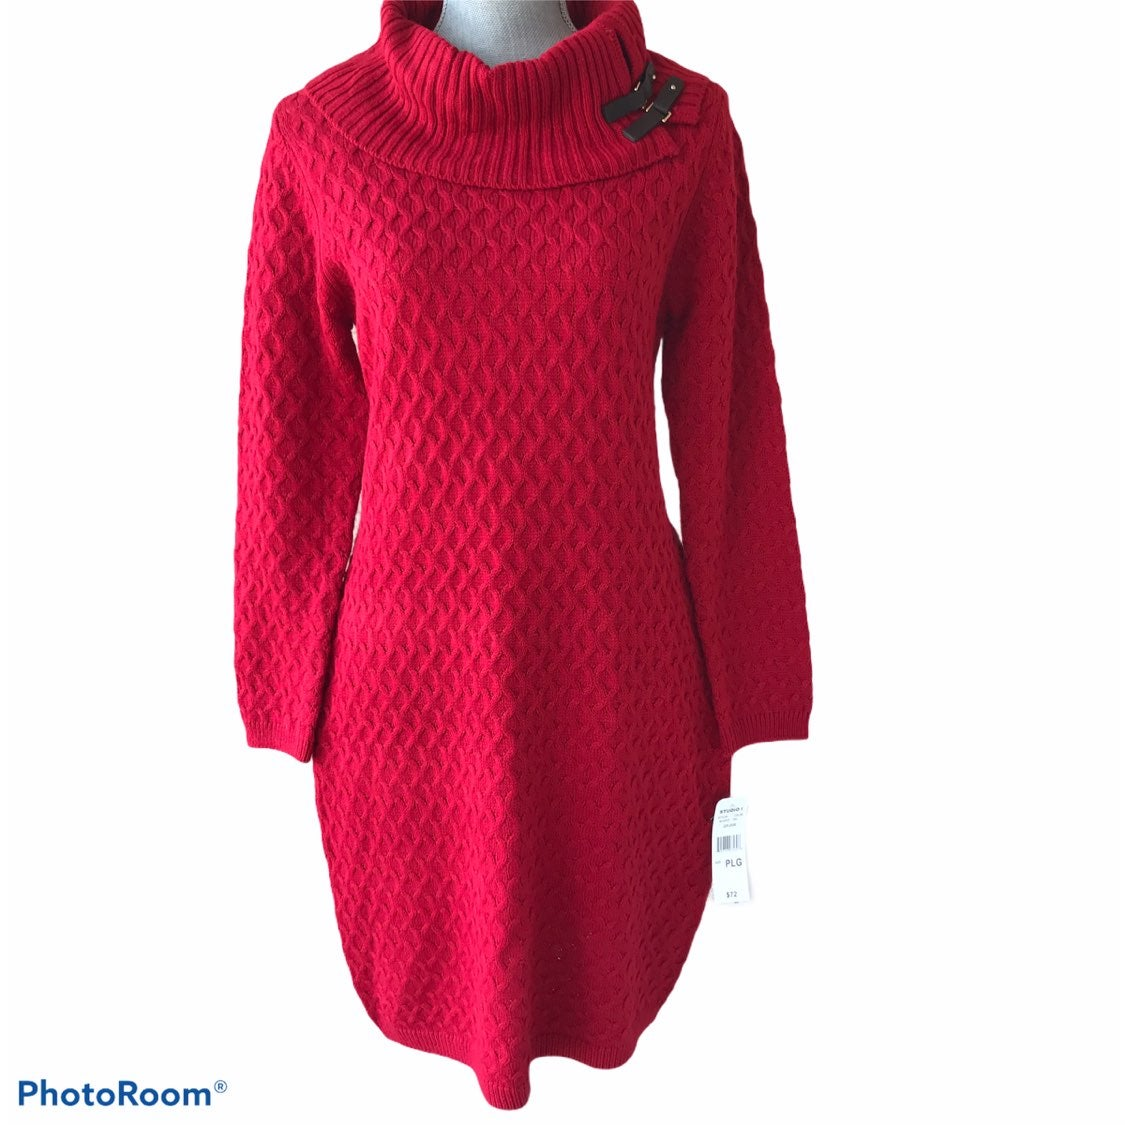 NWT Red Cowl Neck Sweater Dress PL